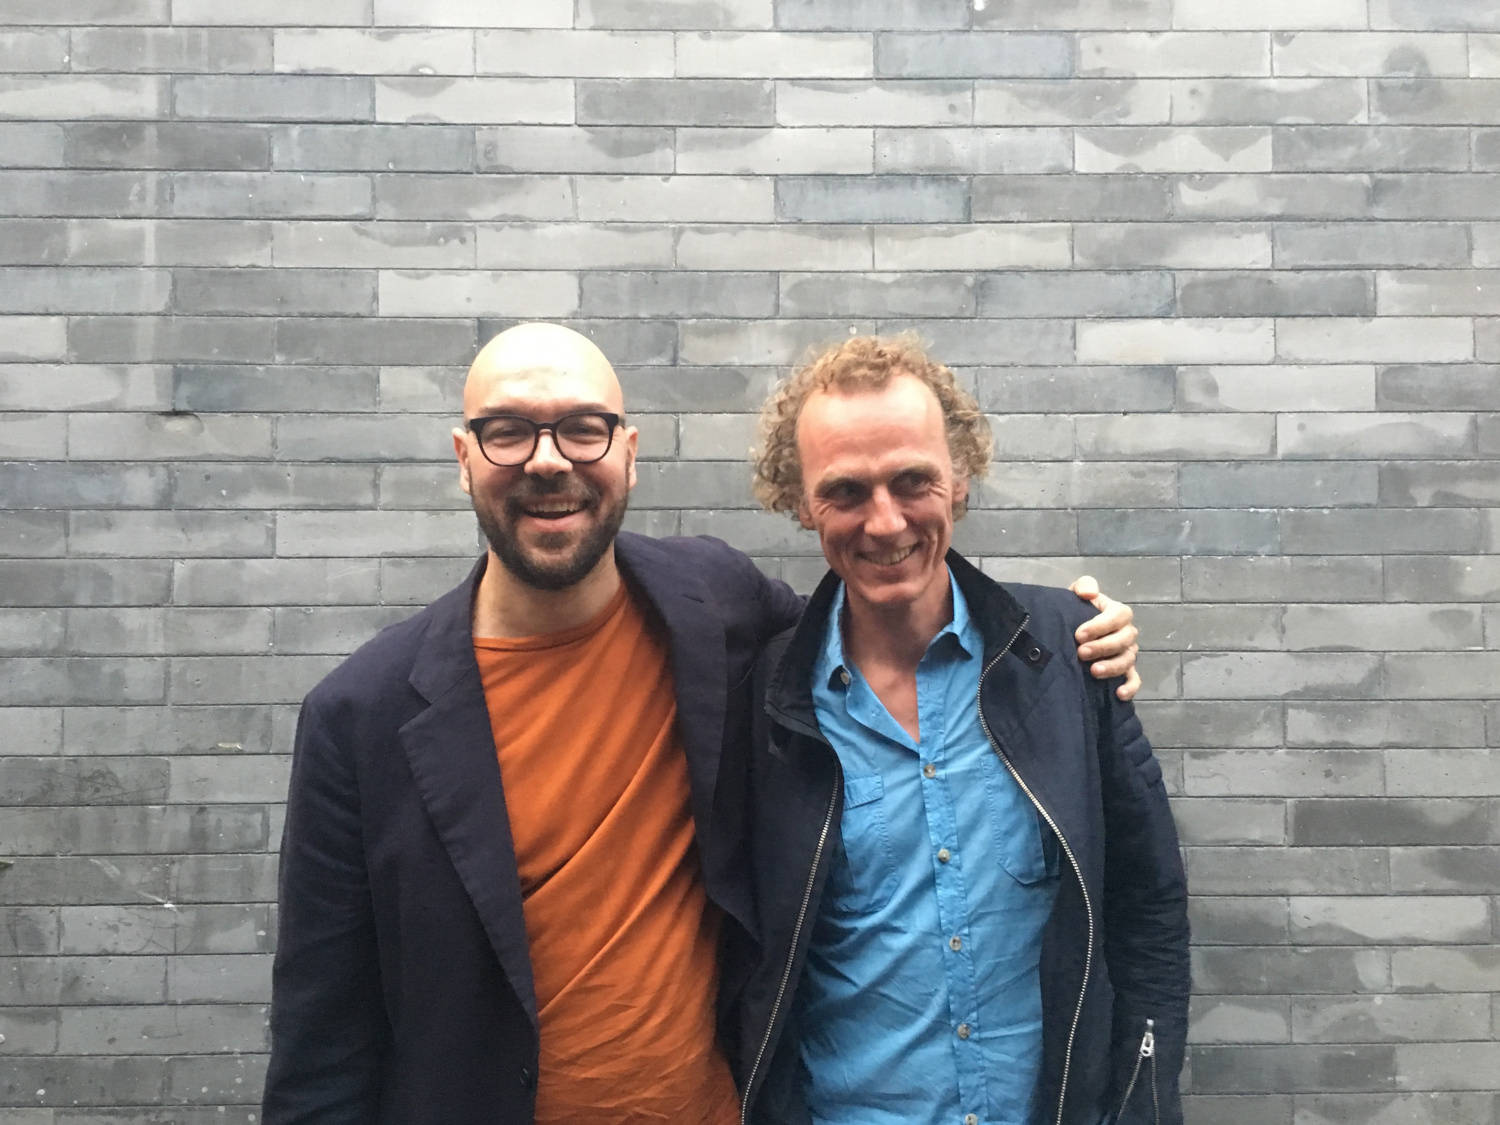 Designers behind the brand ZaoZuo: Luca Nichetto and Richard Hutten